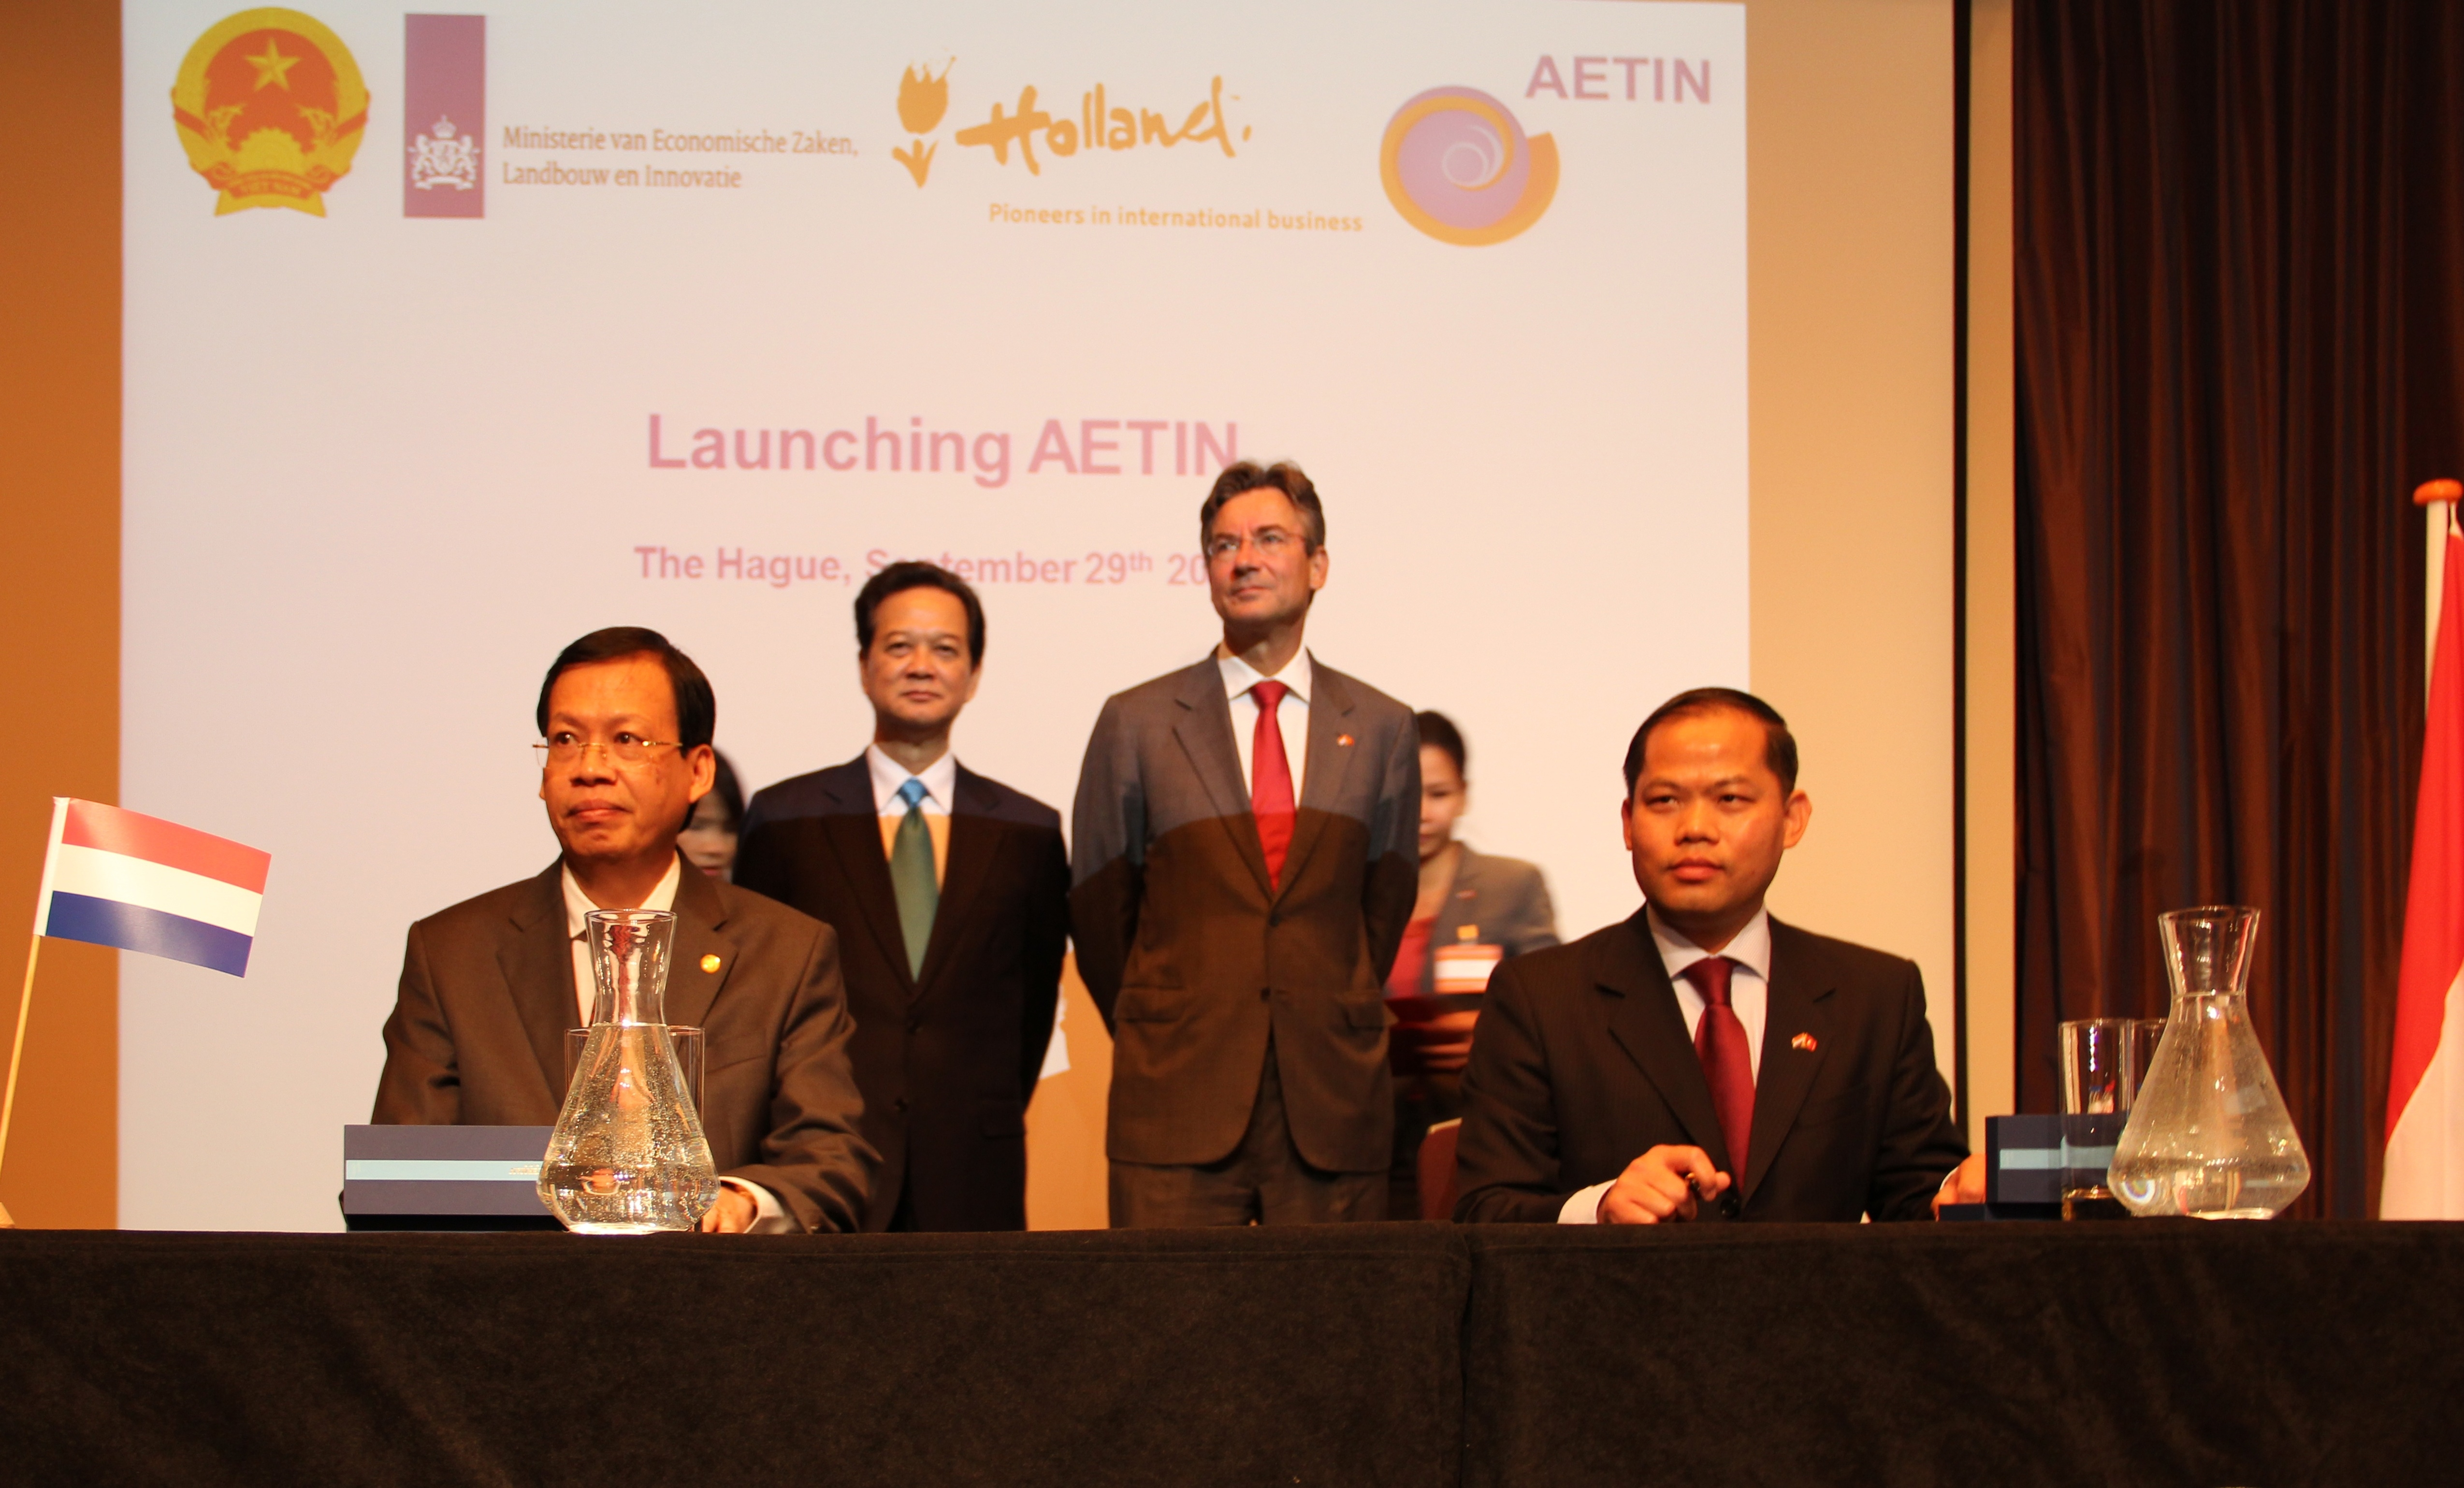 launching aetin 2011